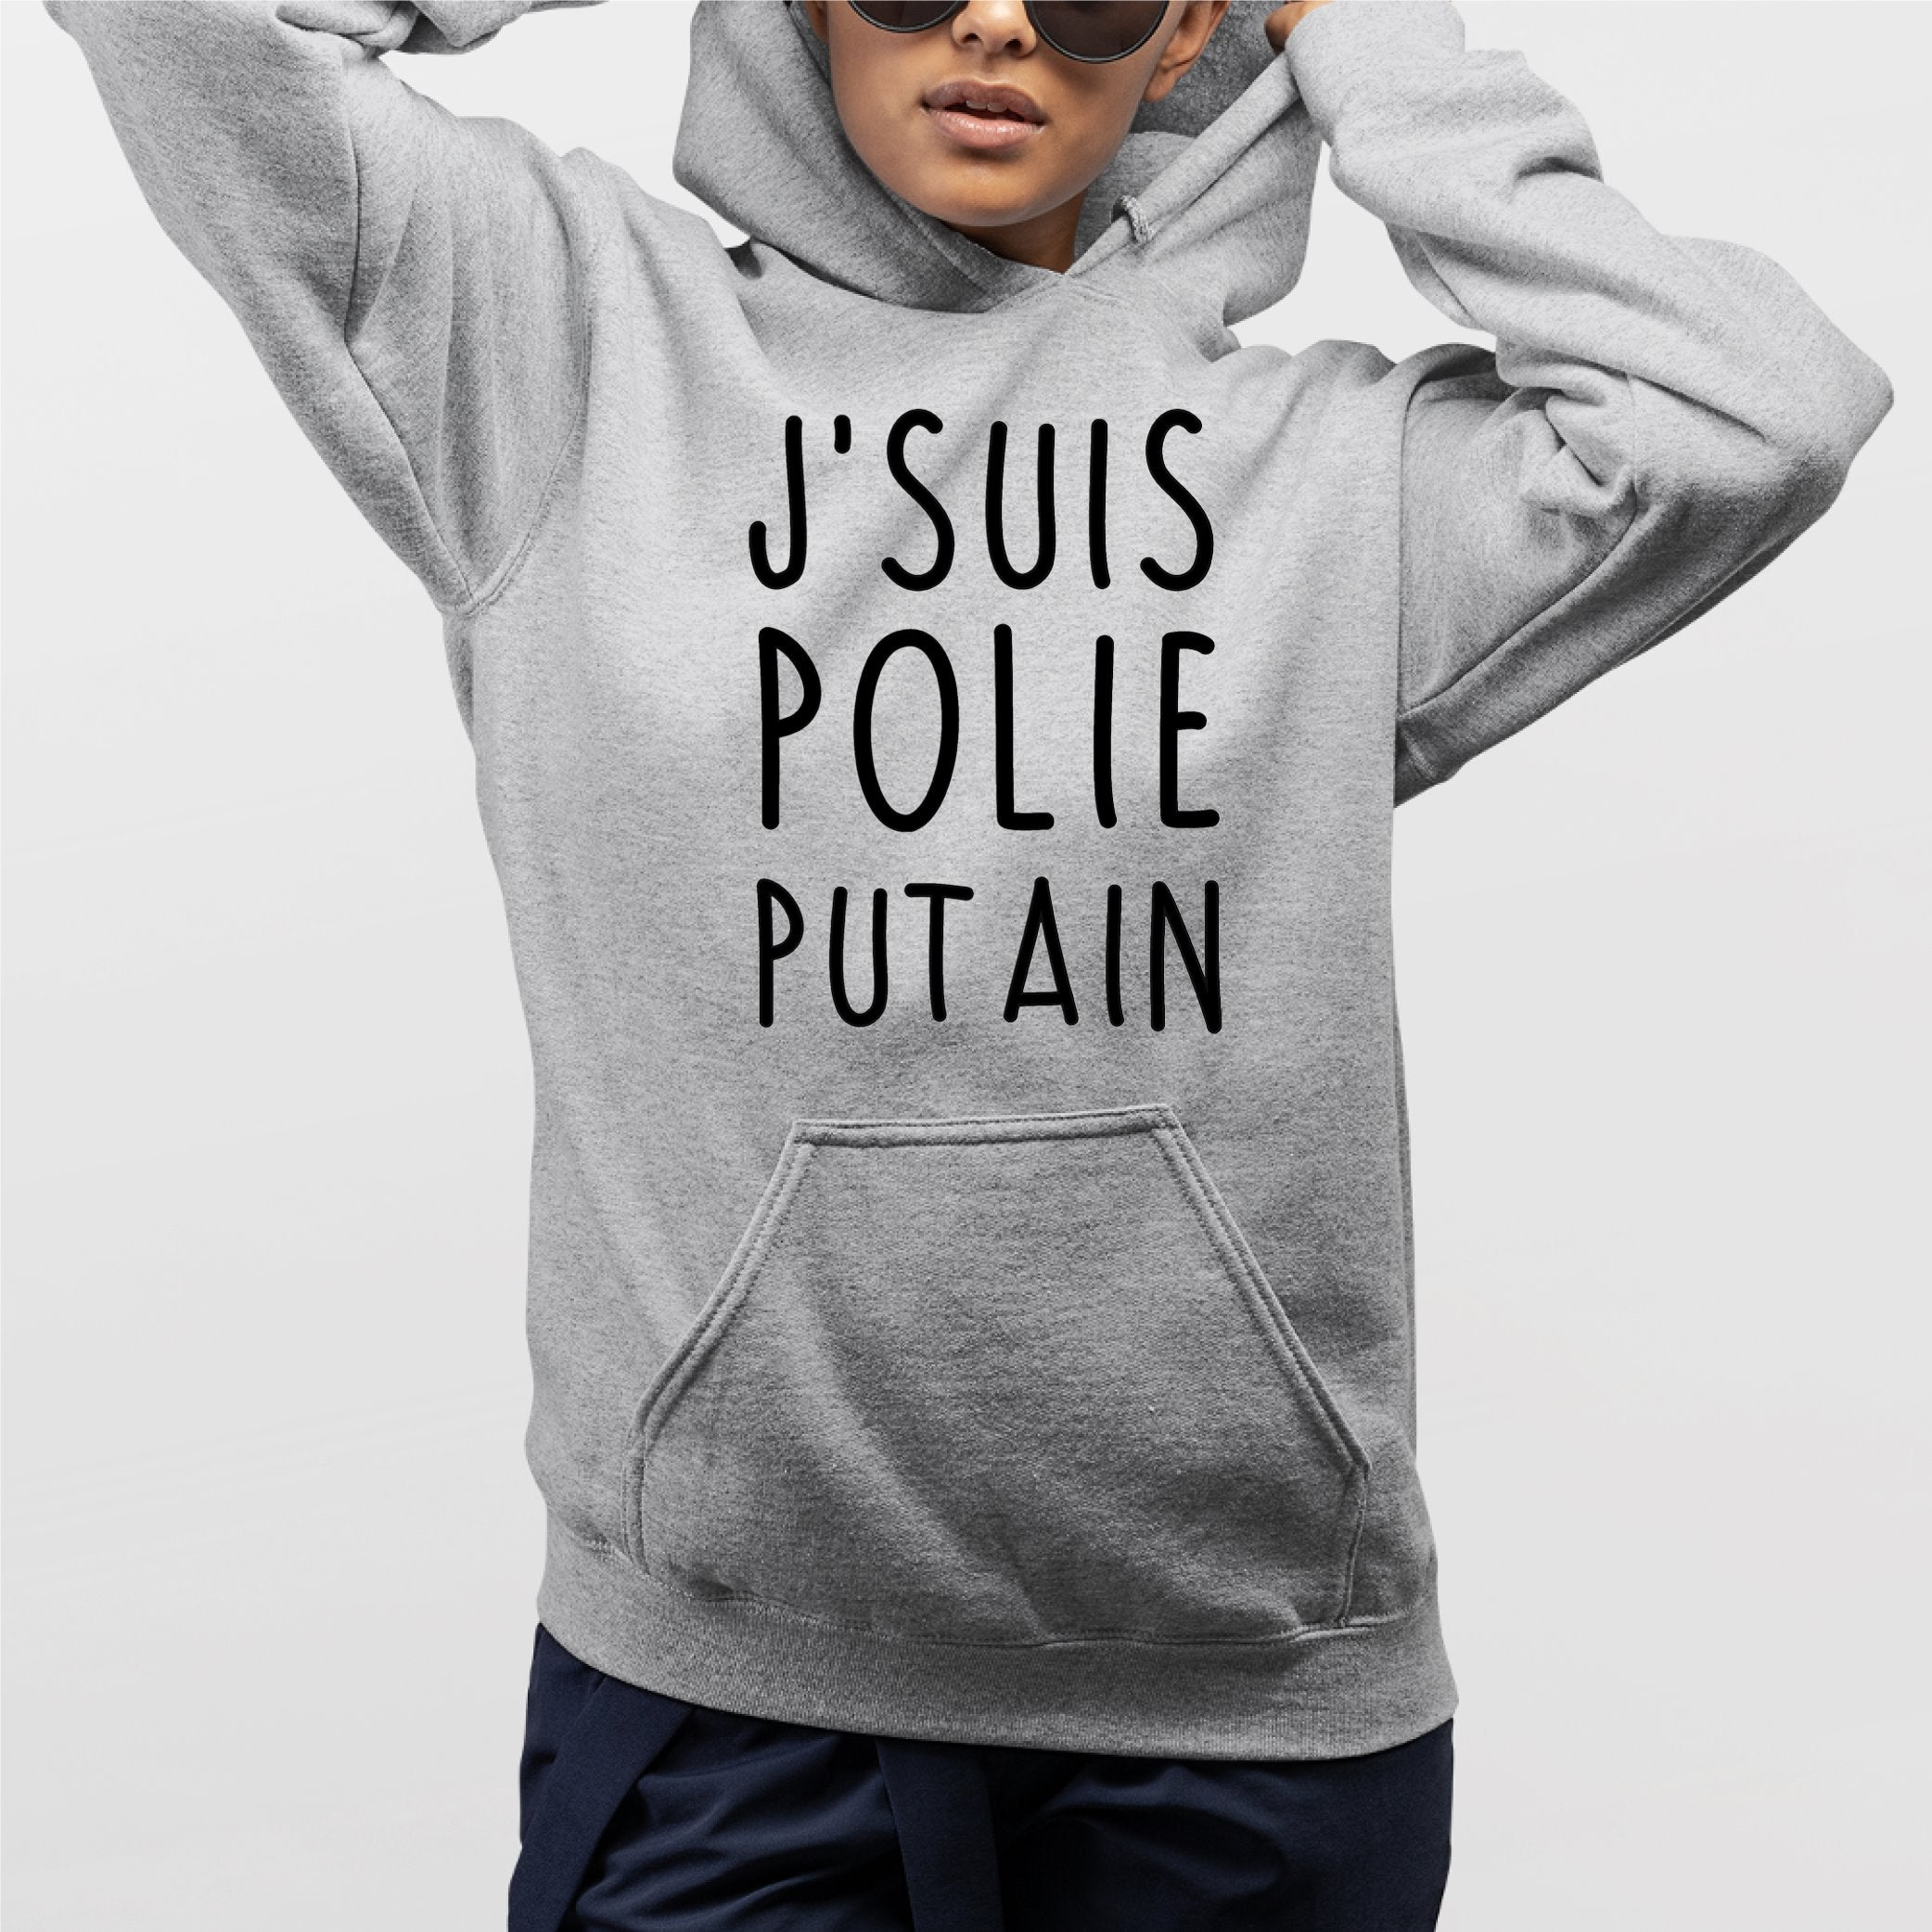 Sweat Capuche Adulte J'suis polie putain Gris